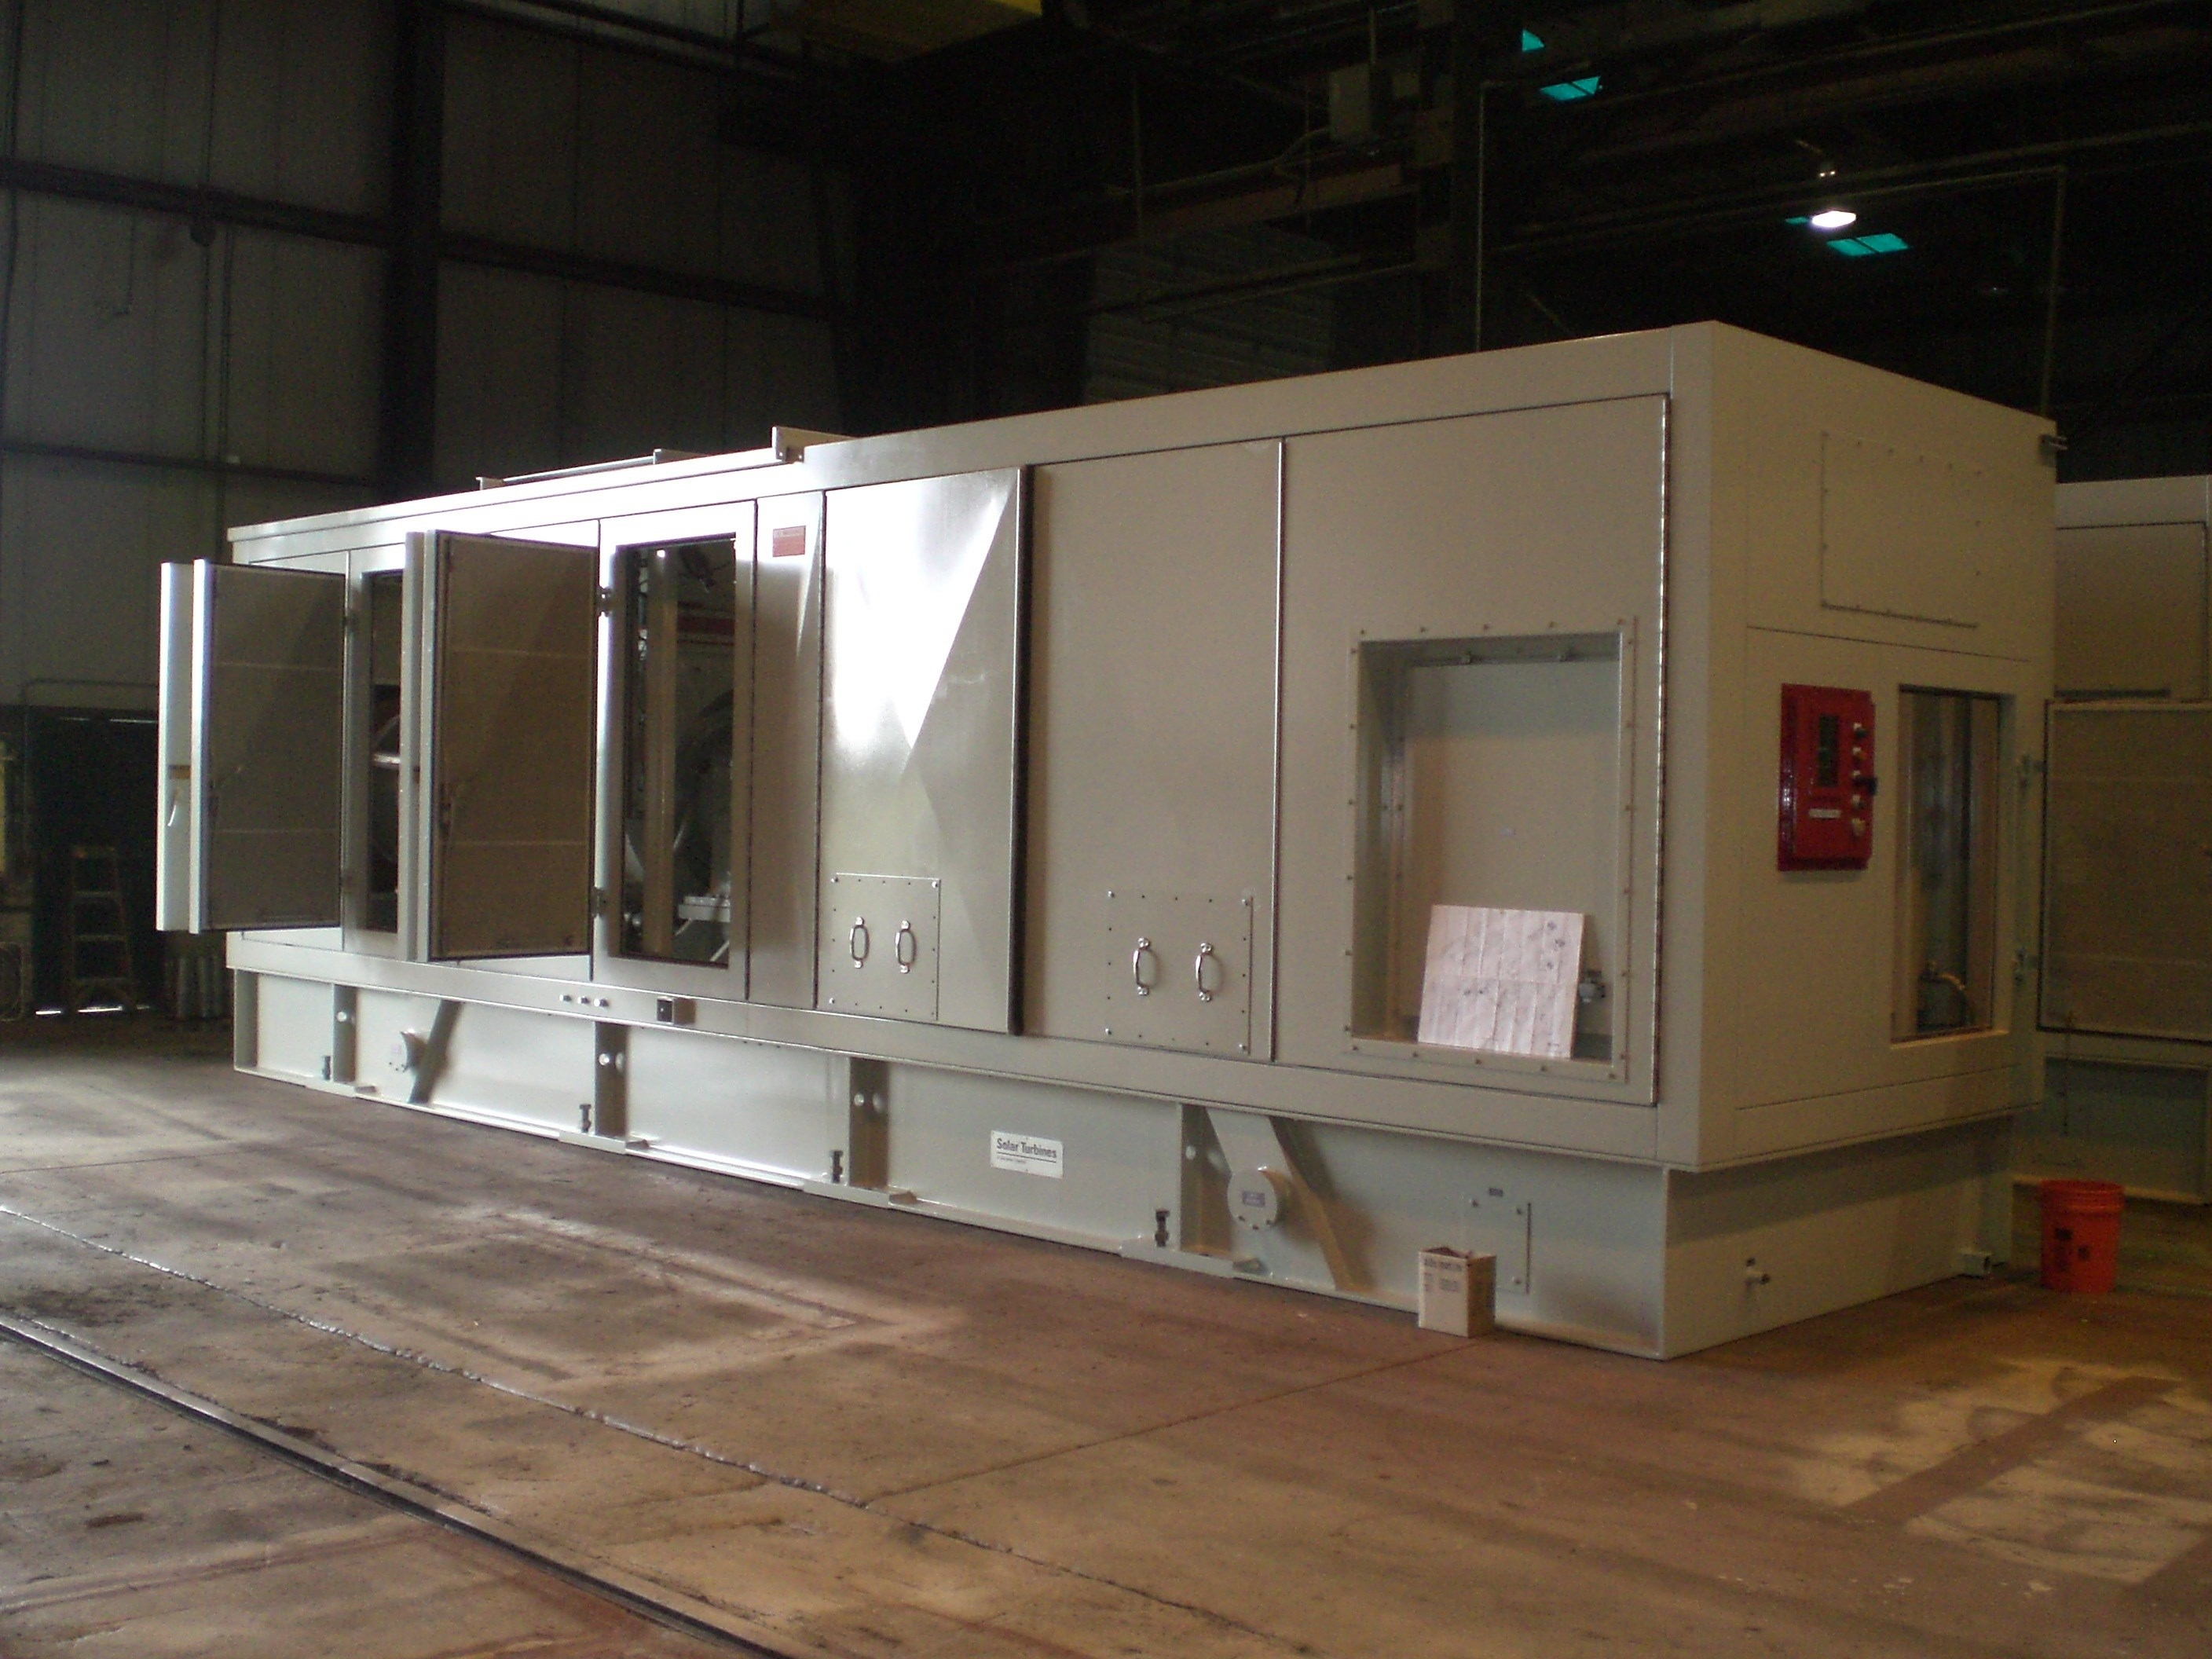 5200 KW Solar Taurus 60 Gas Turbine Generator for Sale at Phoenix